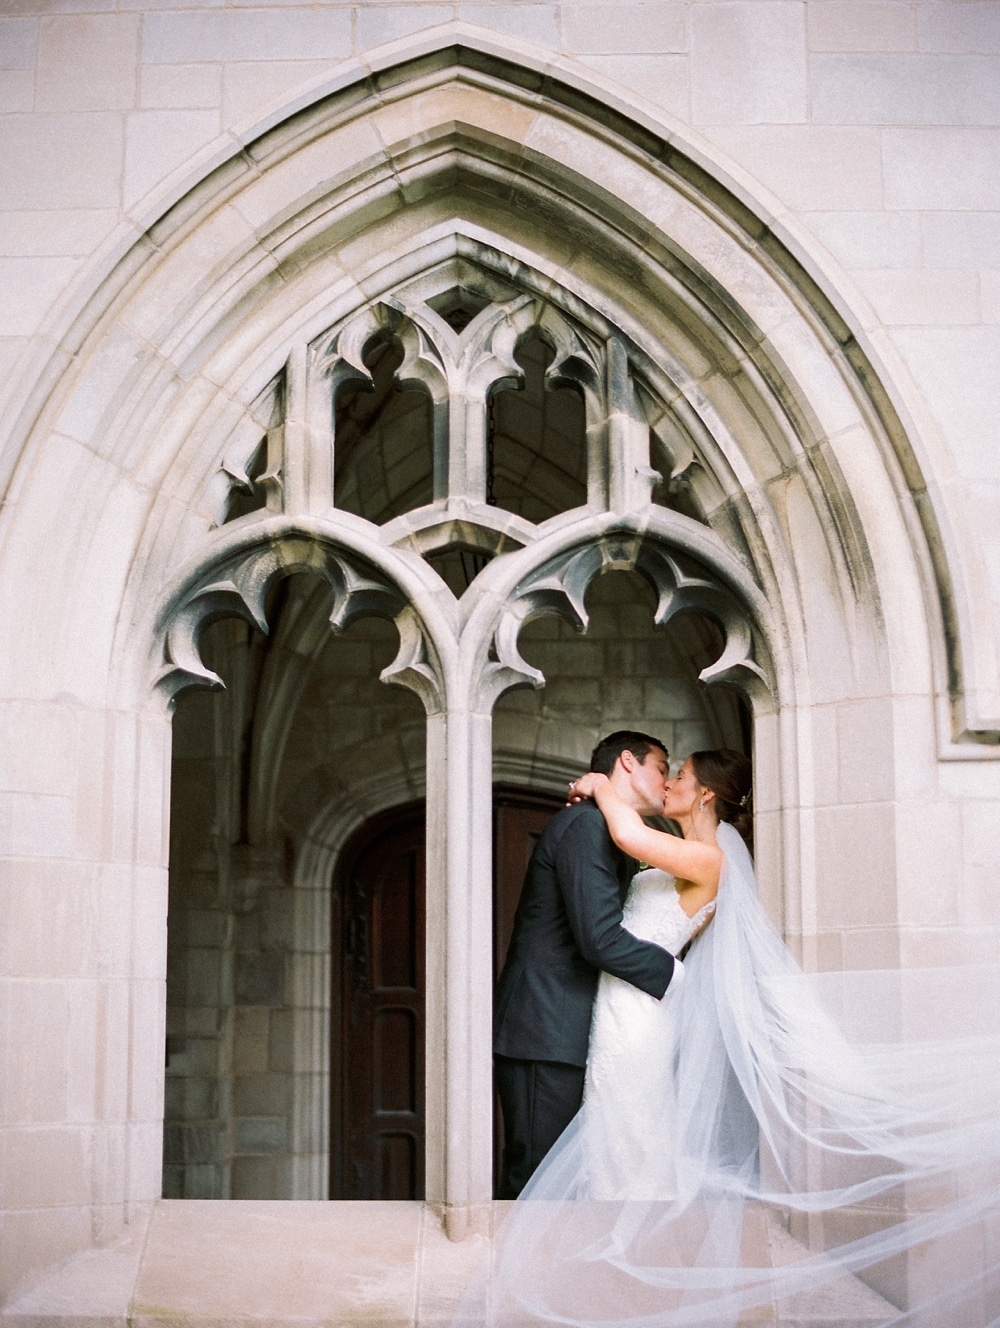 kristin-la-voie-photography-university-of-chicago-wedding-bridgeport-art-center-bond-chapel-116